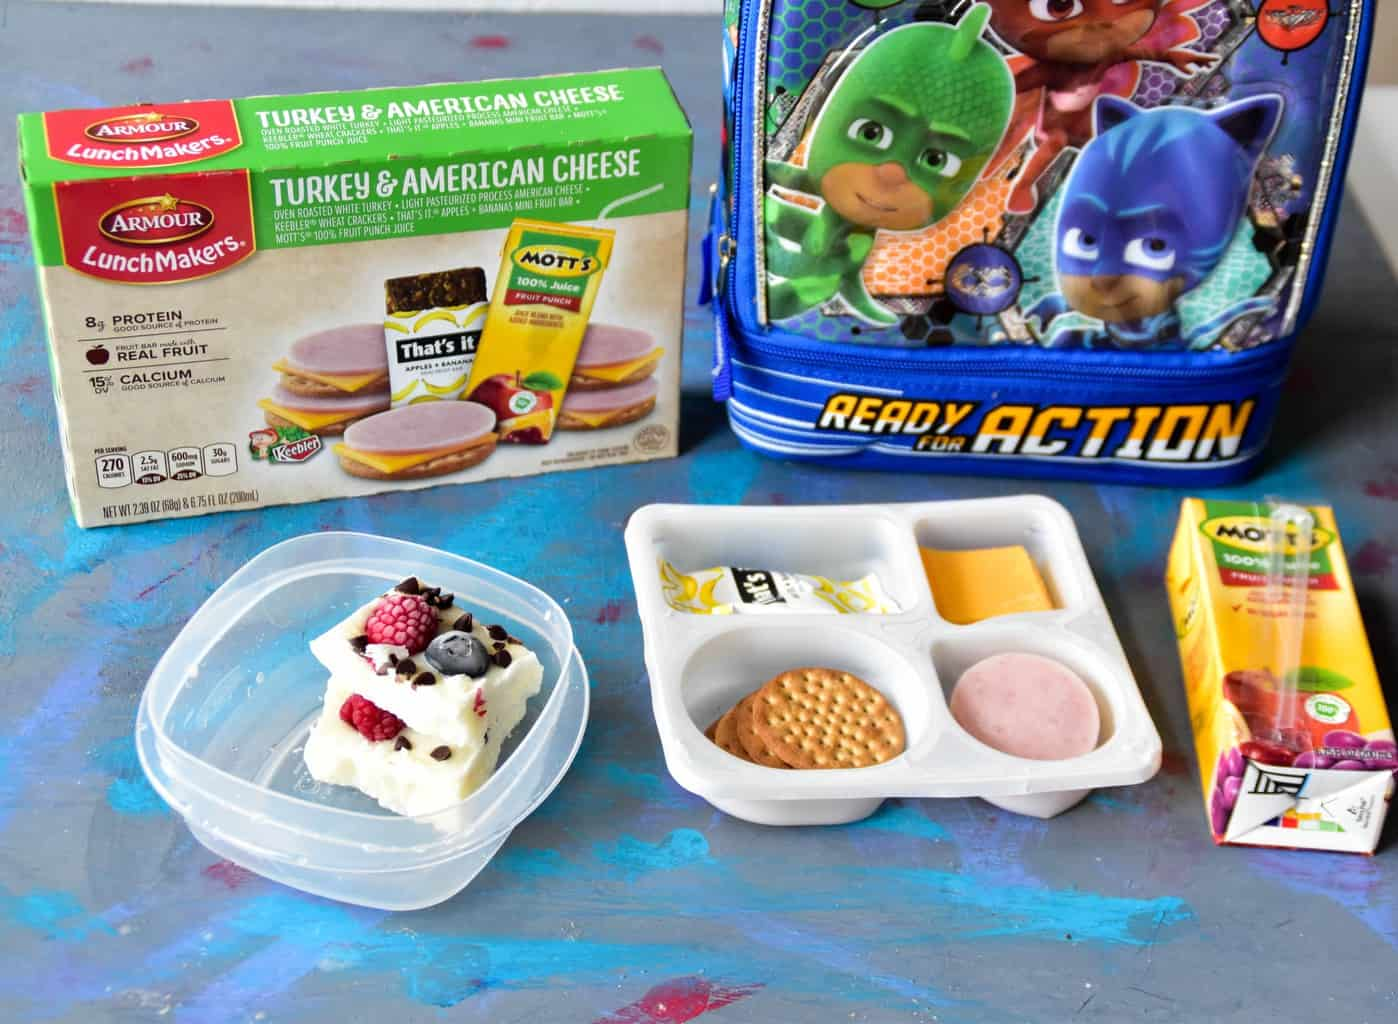 """<img src=""""https://cdn.shortpixel.ai/client/q_glossy,ret_img,w_1398,h_1024/Turkey and Cheese Armour® Lunchmakers® + Drink and Yogurt Bark .jpg"""" alt="""" Turkey and Cheese Armour® Lunchmakers® + Drink and Yogurt Bark1 """">"""